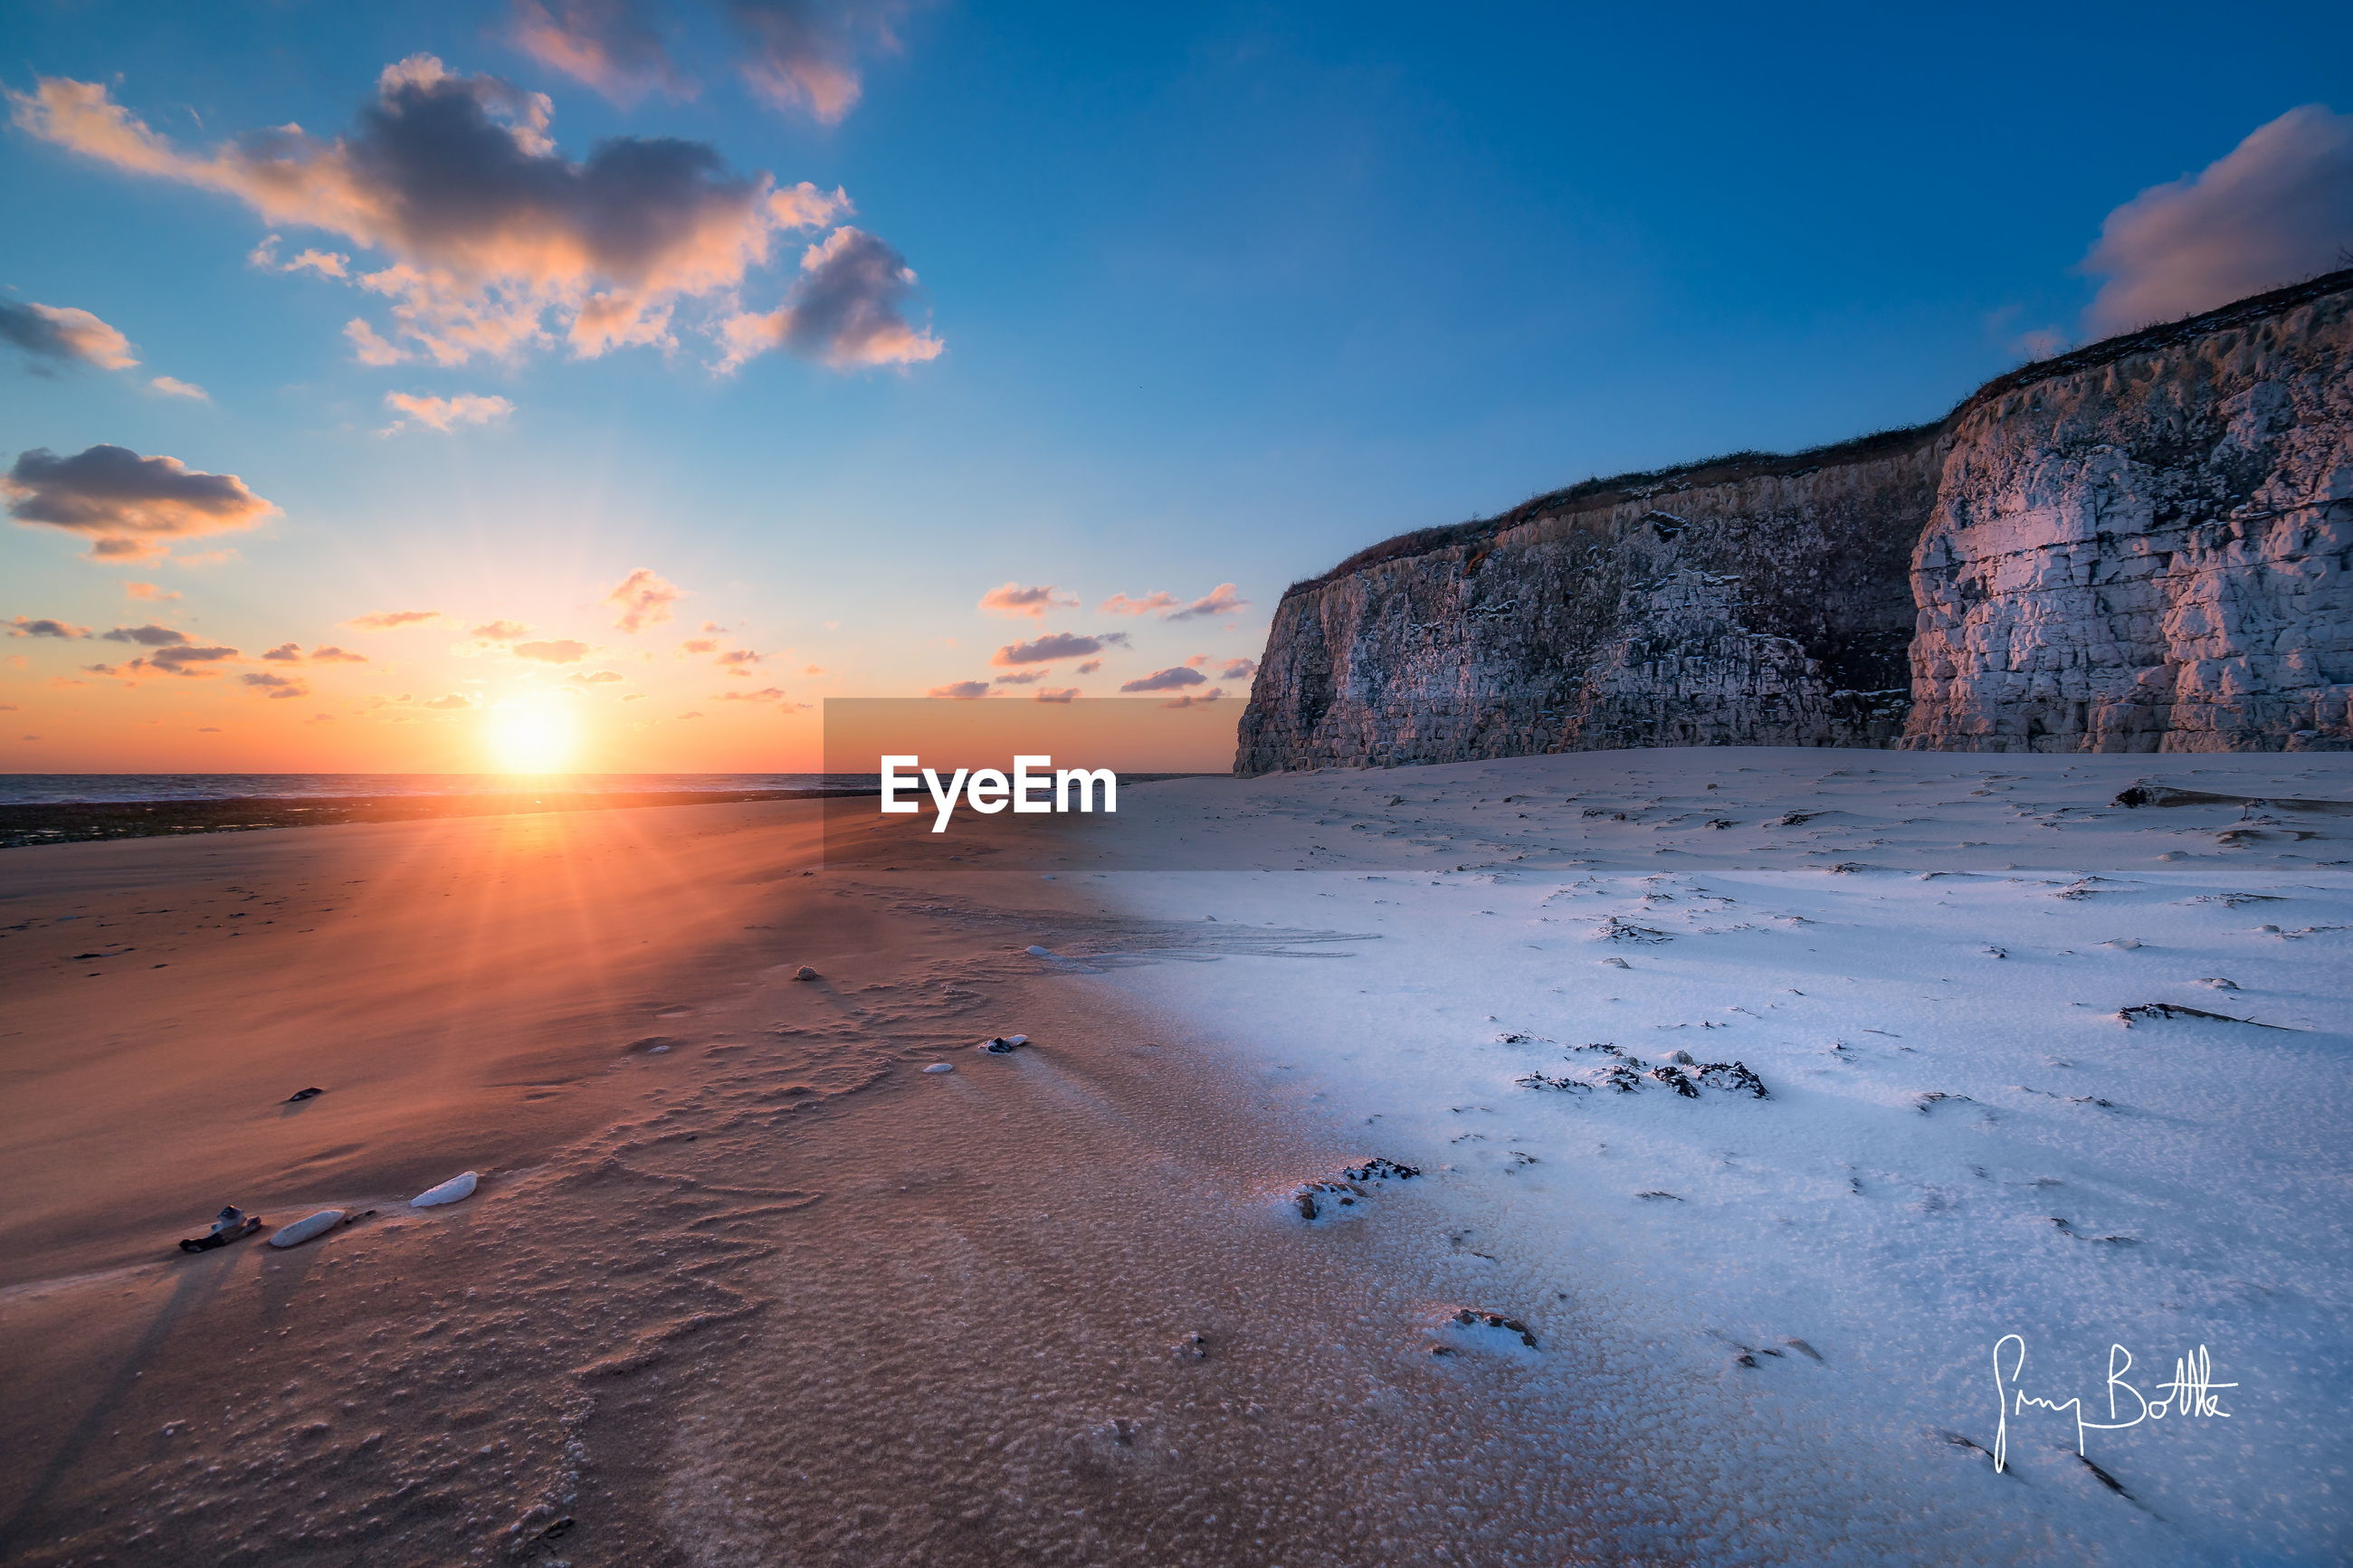 sunset, sky, nature, scenics, sun, beauty in nature, sea, beach, tranquility, tranquil scene, sand, outdoors, sunlight, water, rock - object, cloud - sky, no people, horizon over water, day